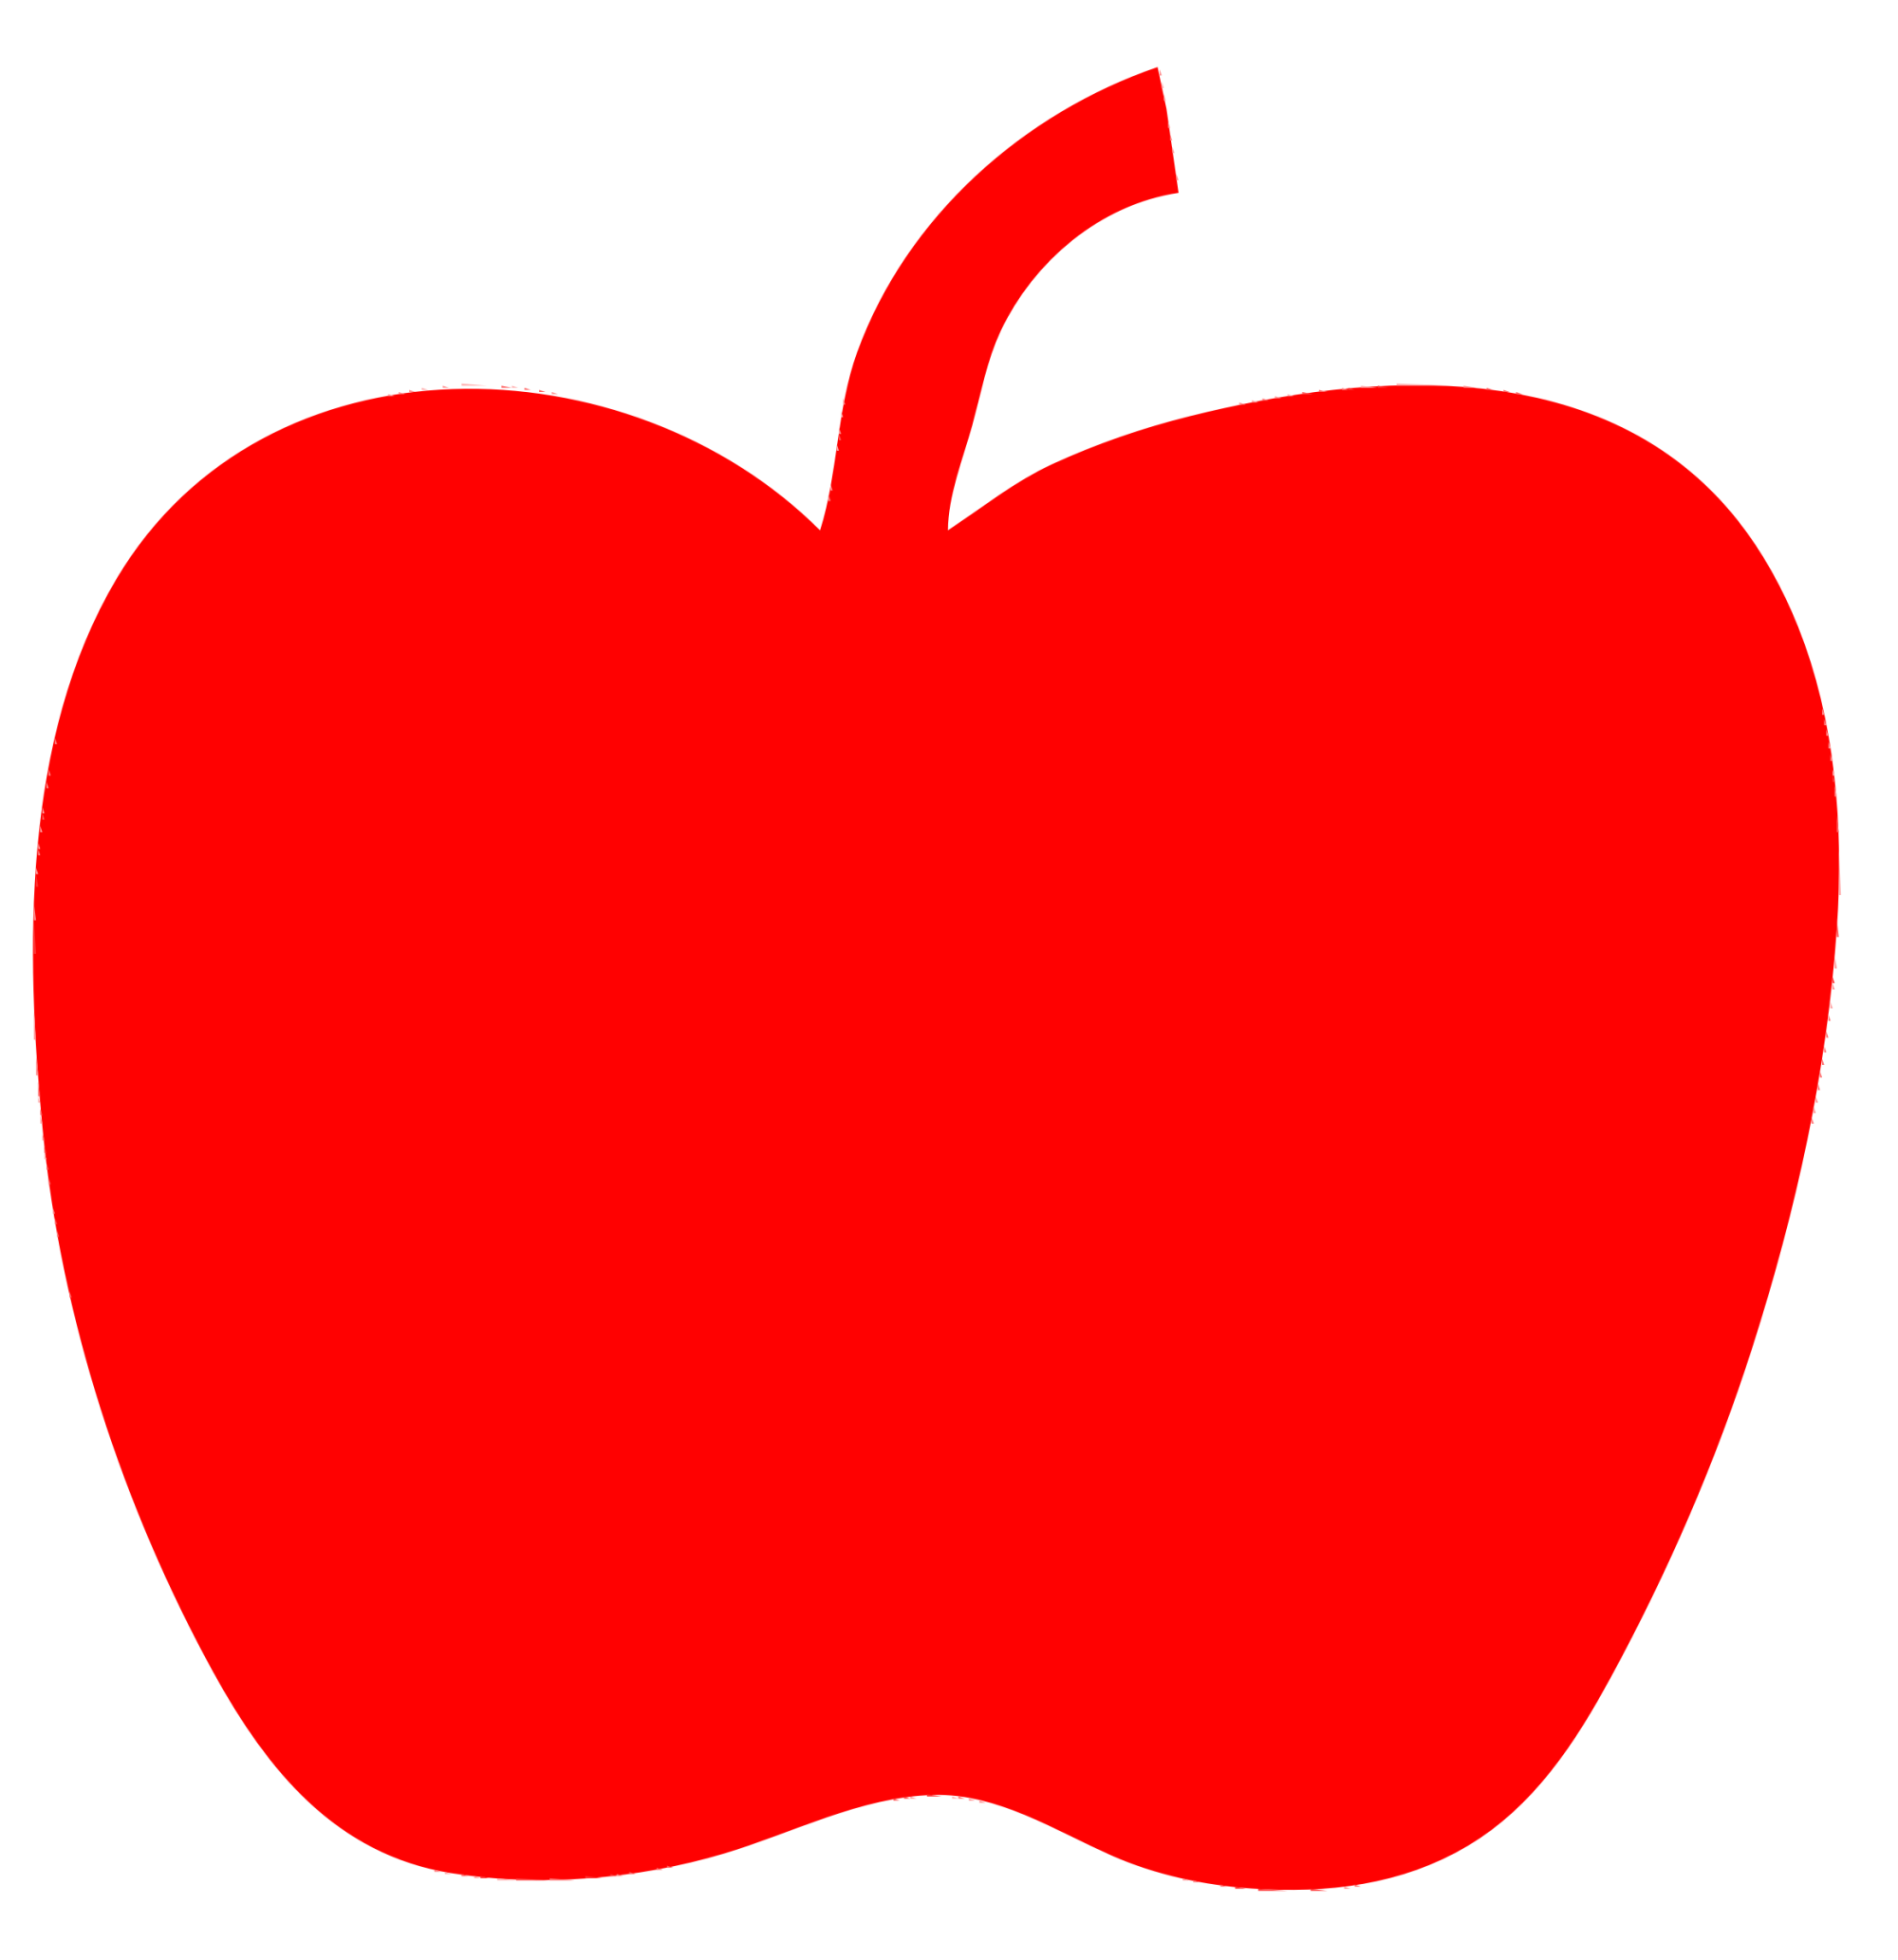 hight resolution of clipart red apple openclipart